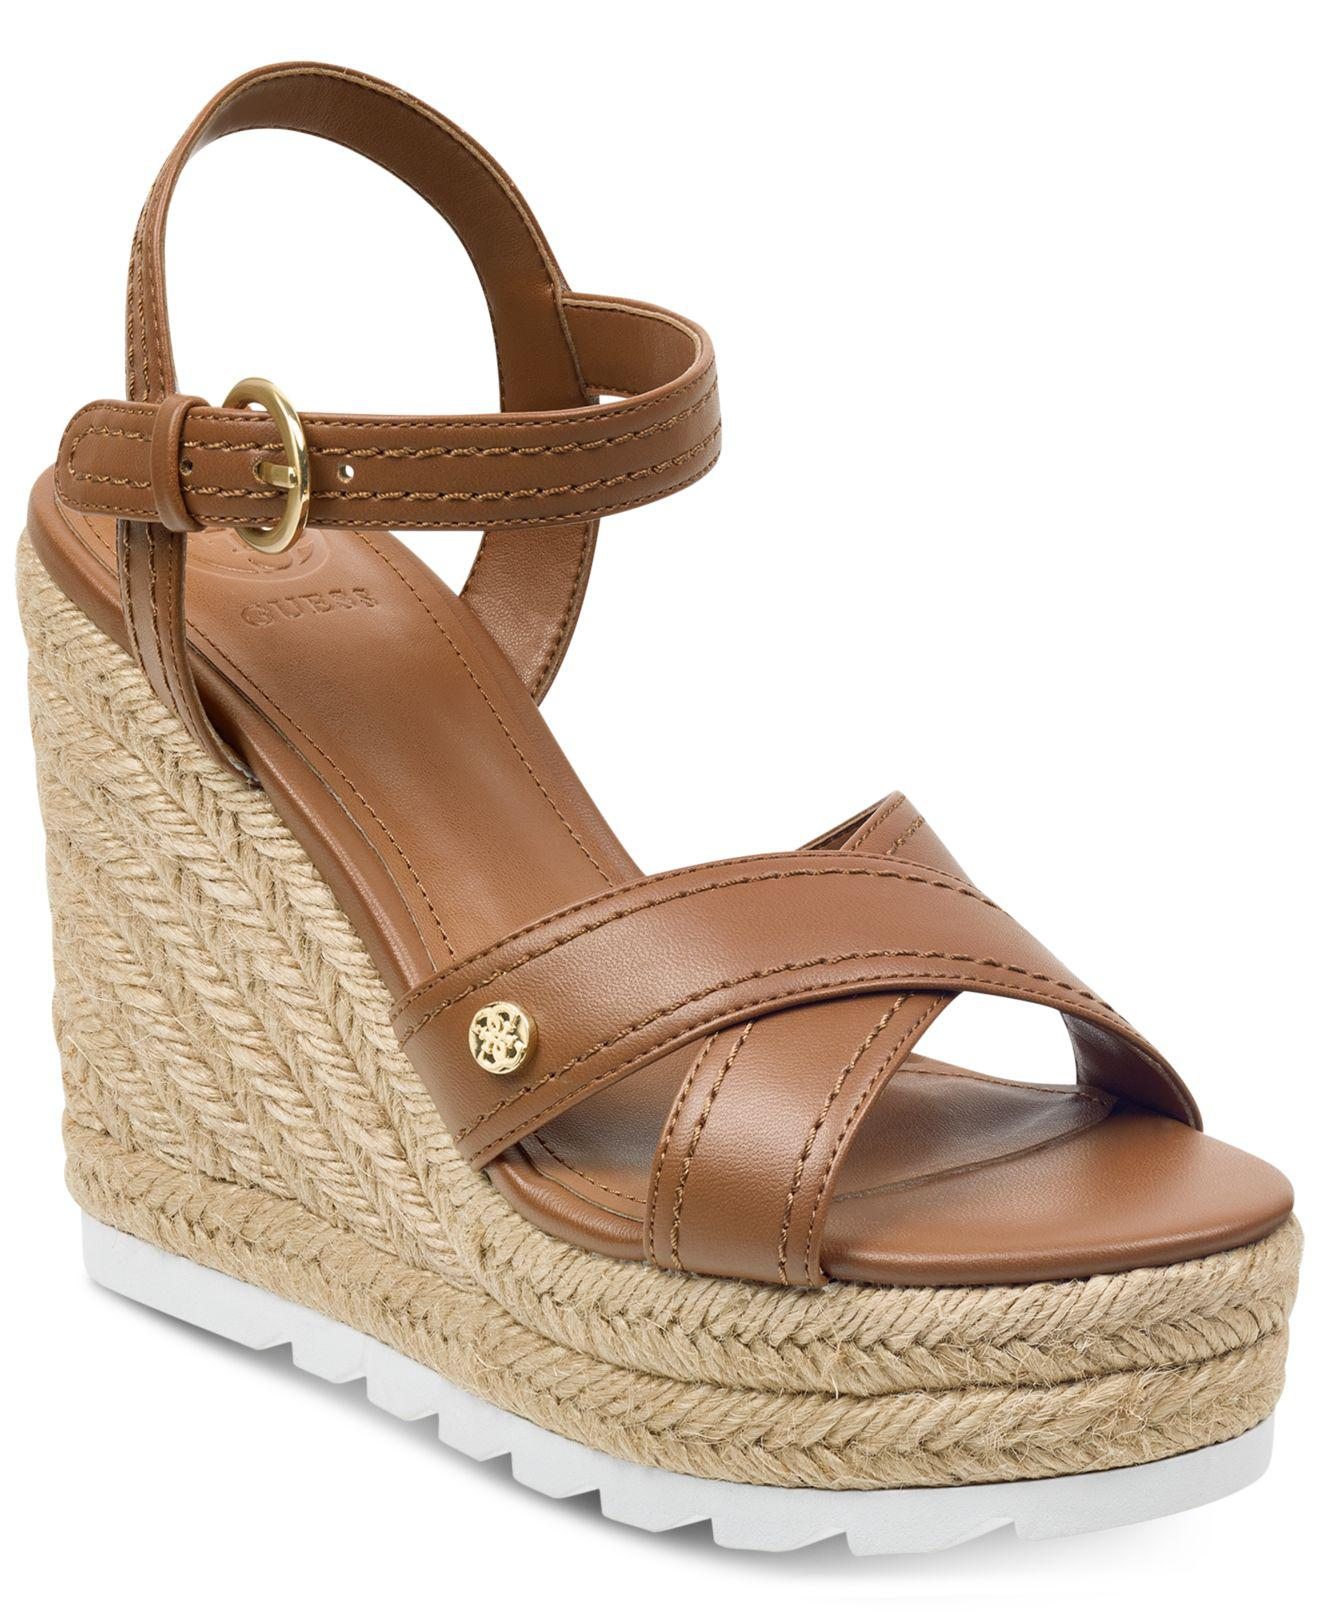 7078c215bba Lyst - Guess Genisi Espadrille Wedge Sandals in Brown